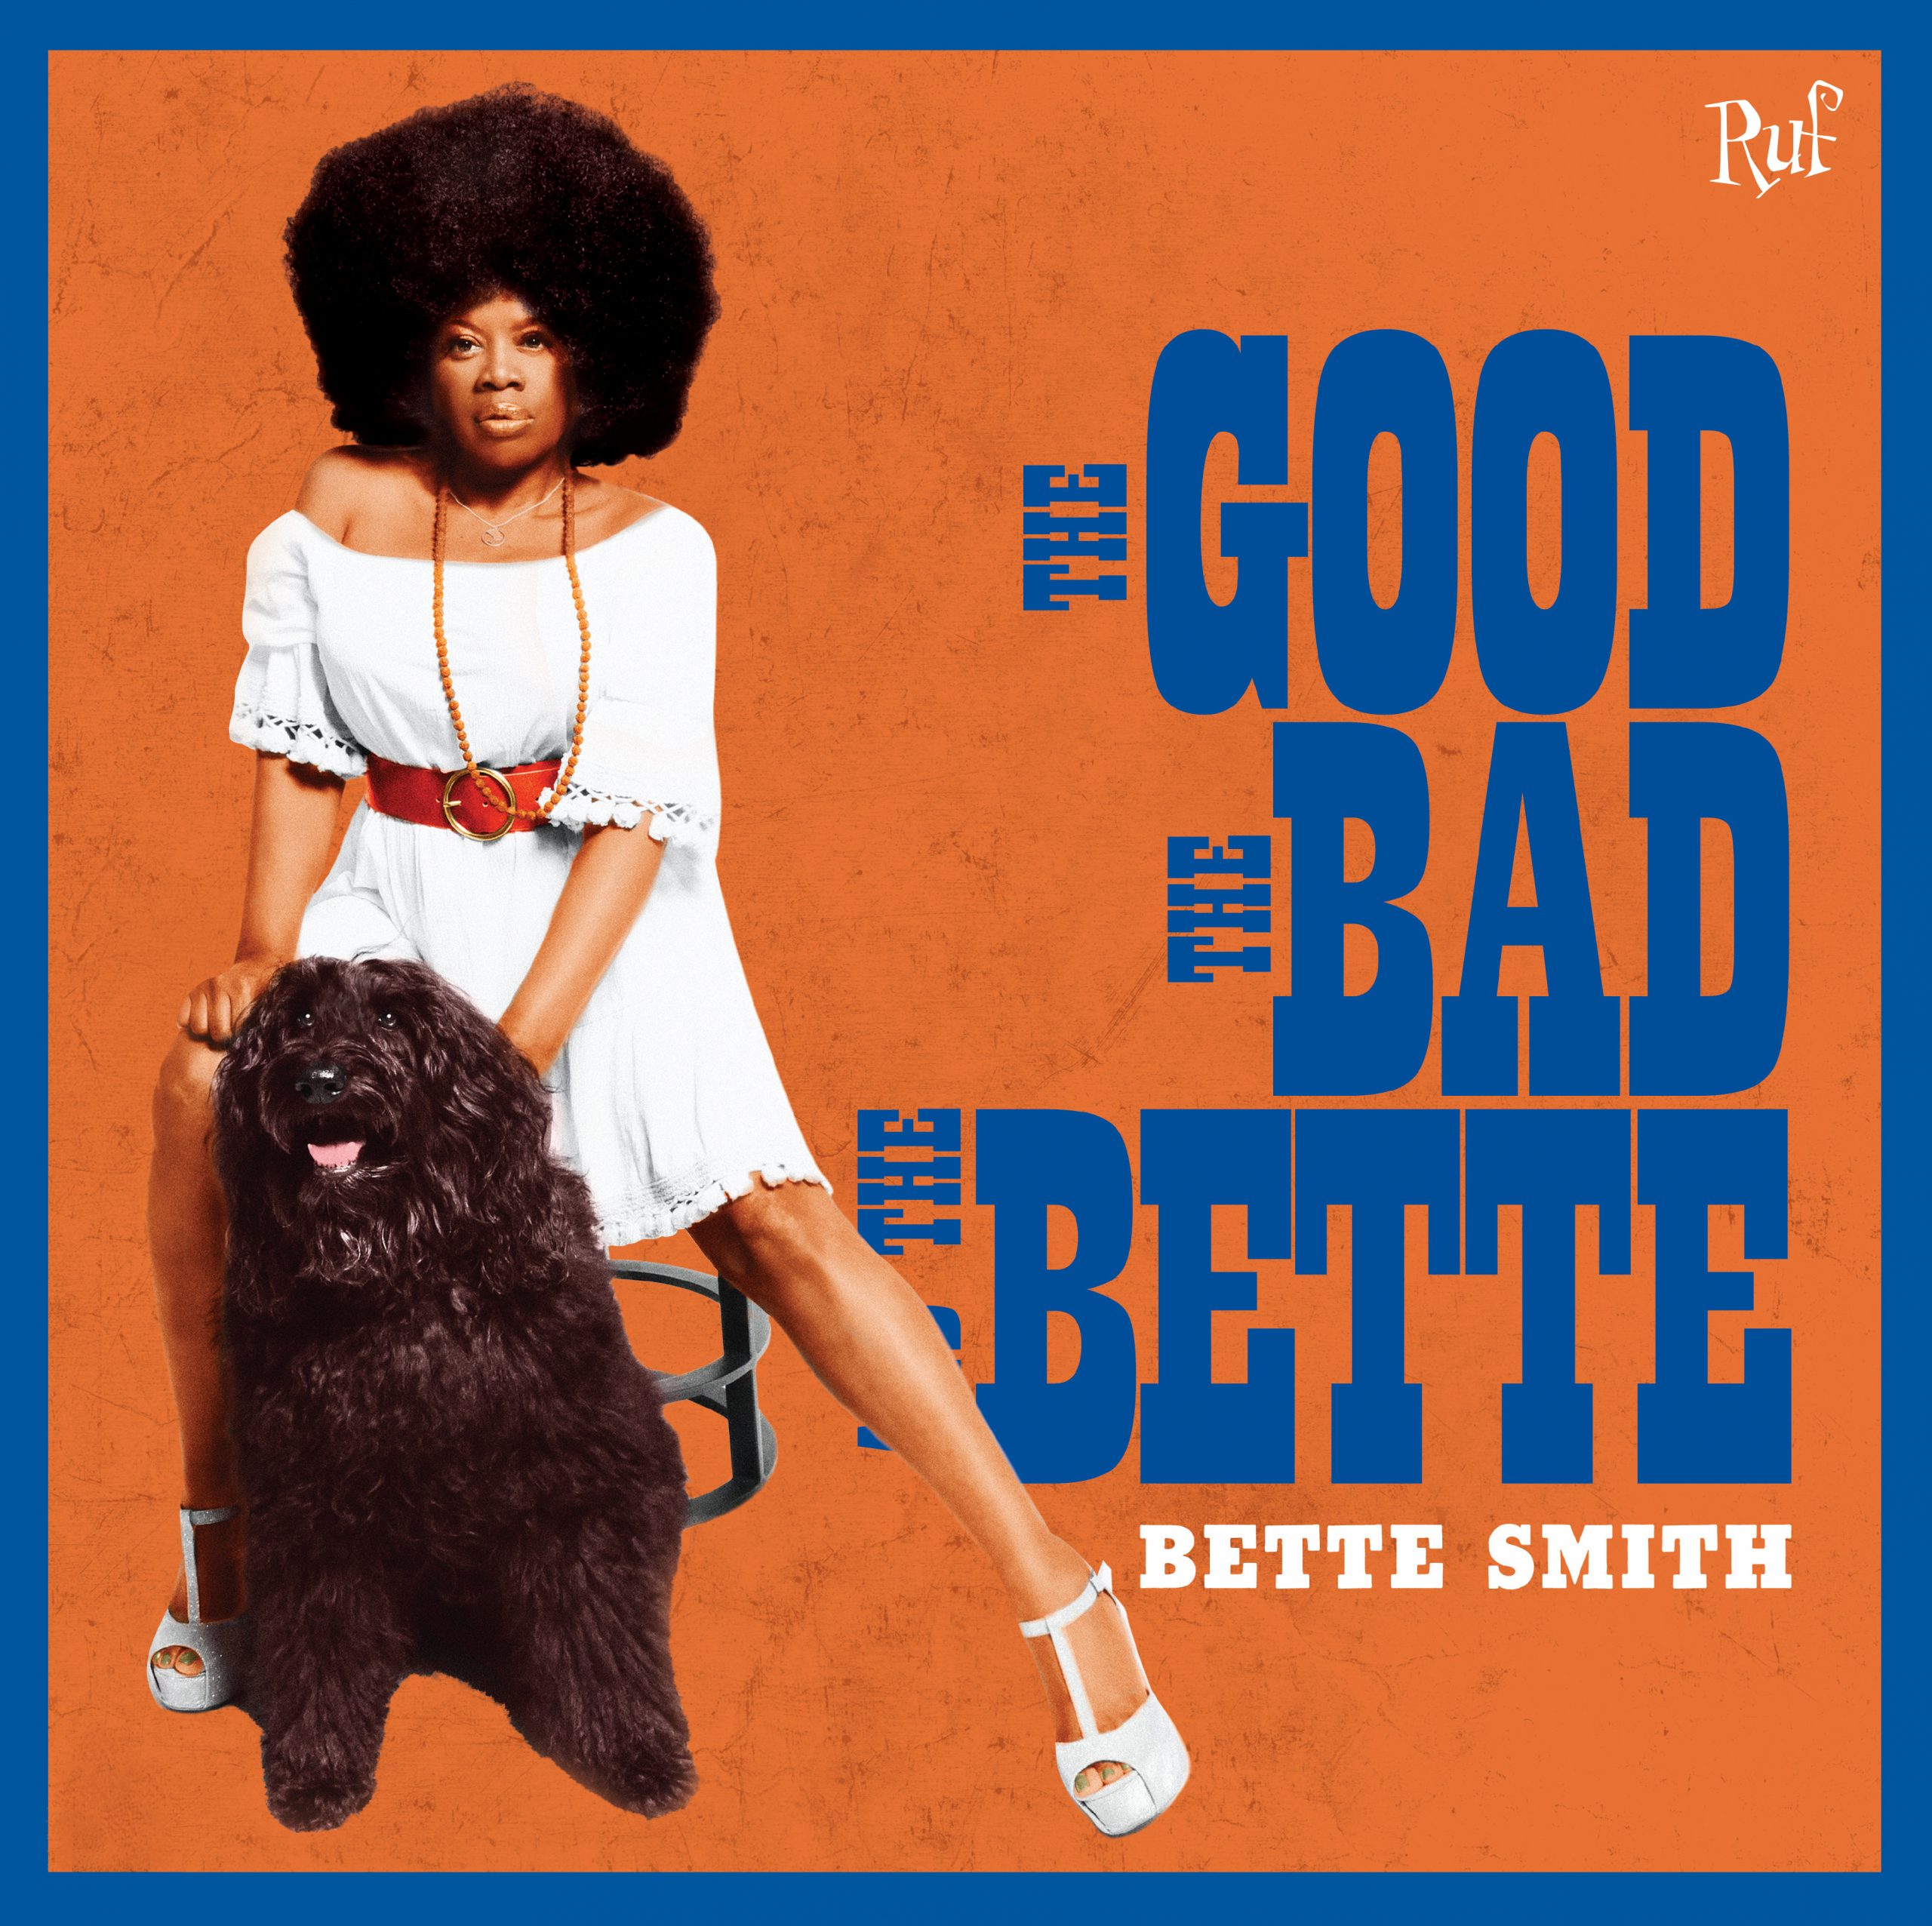 Bette Smith – Neues Video